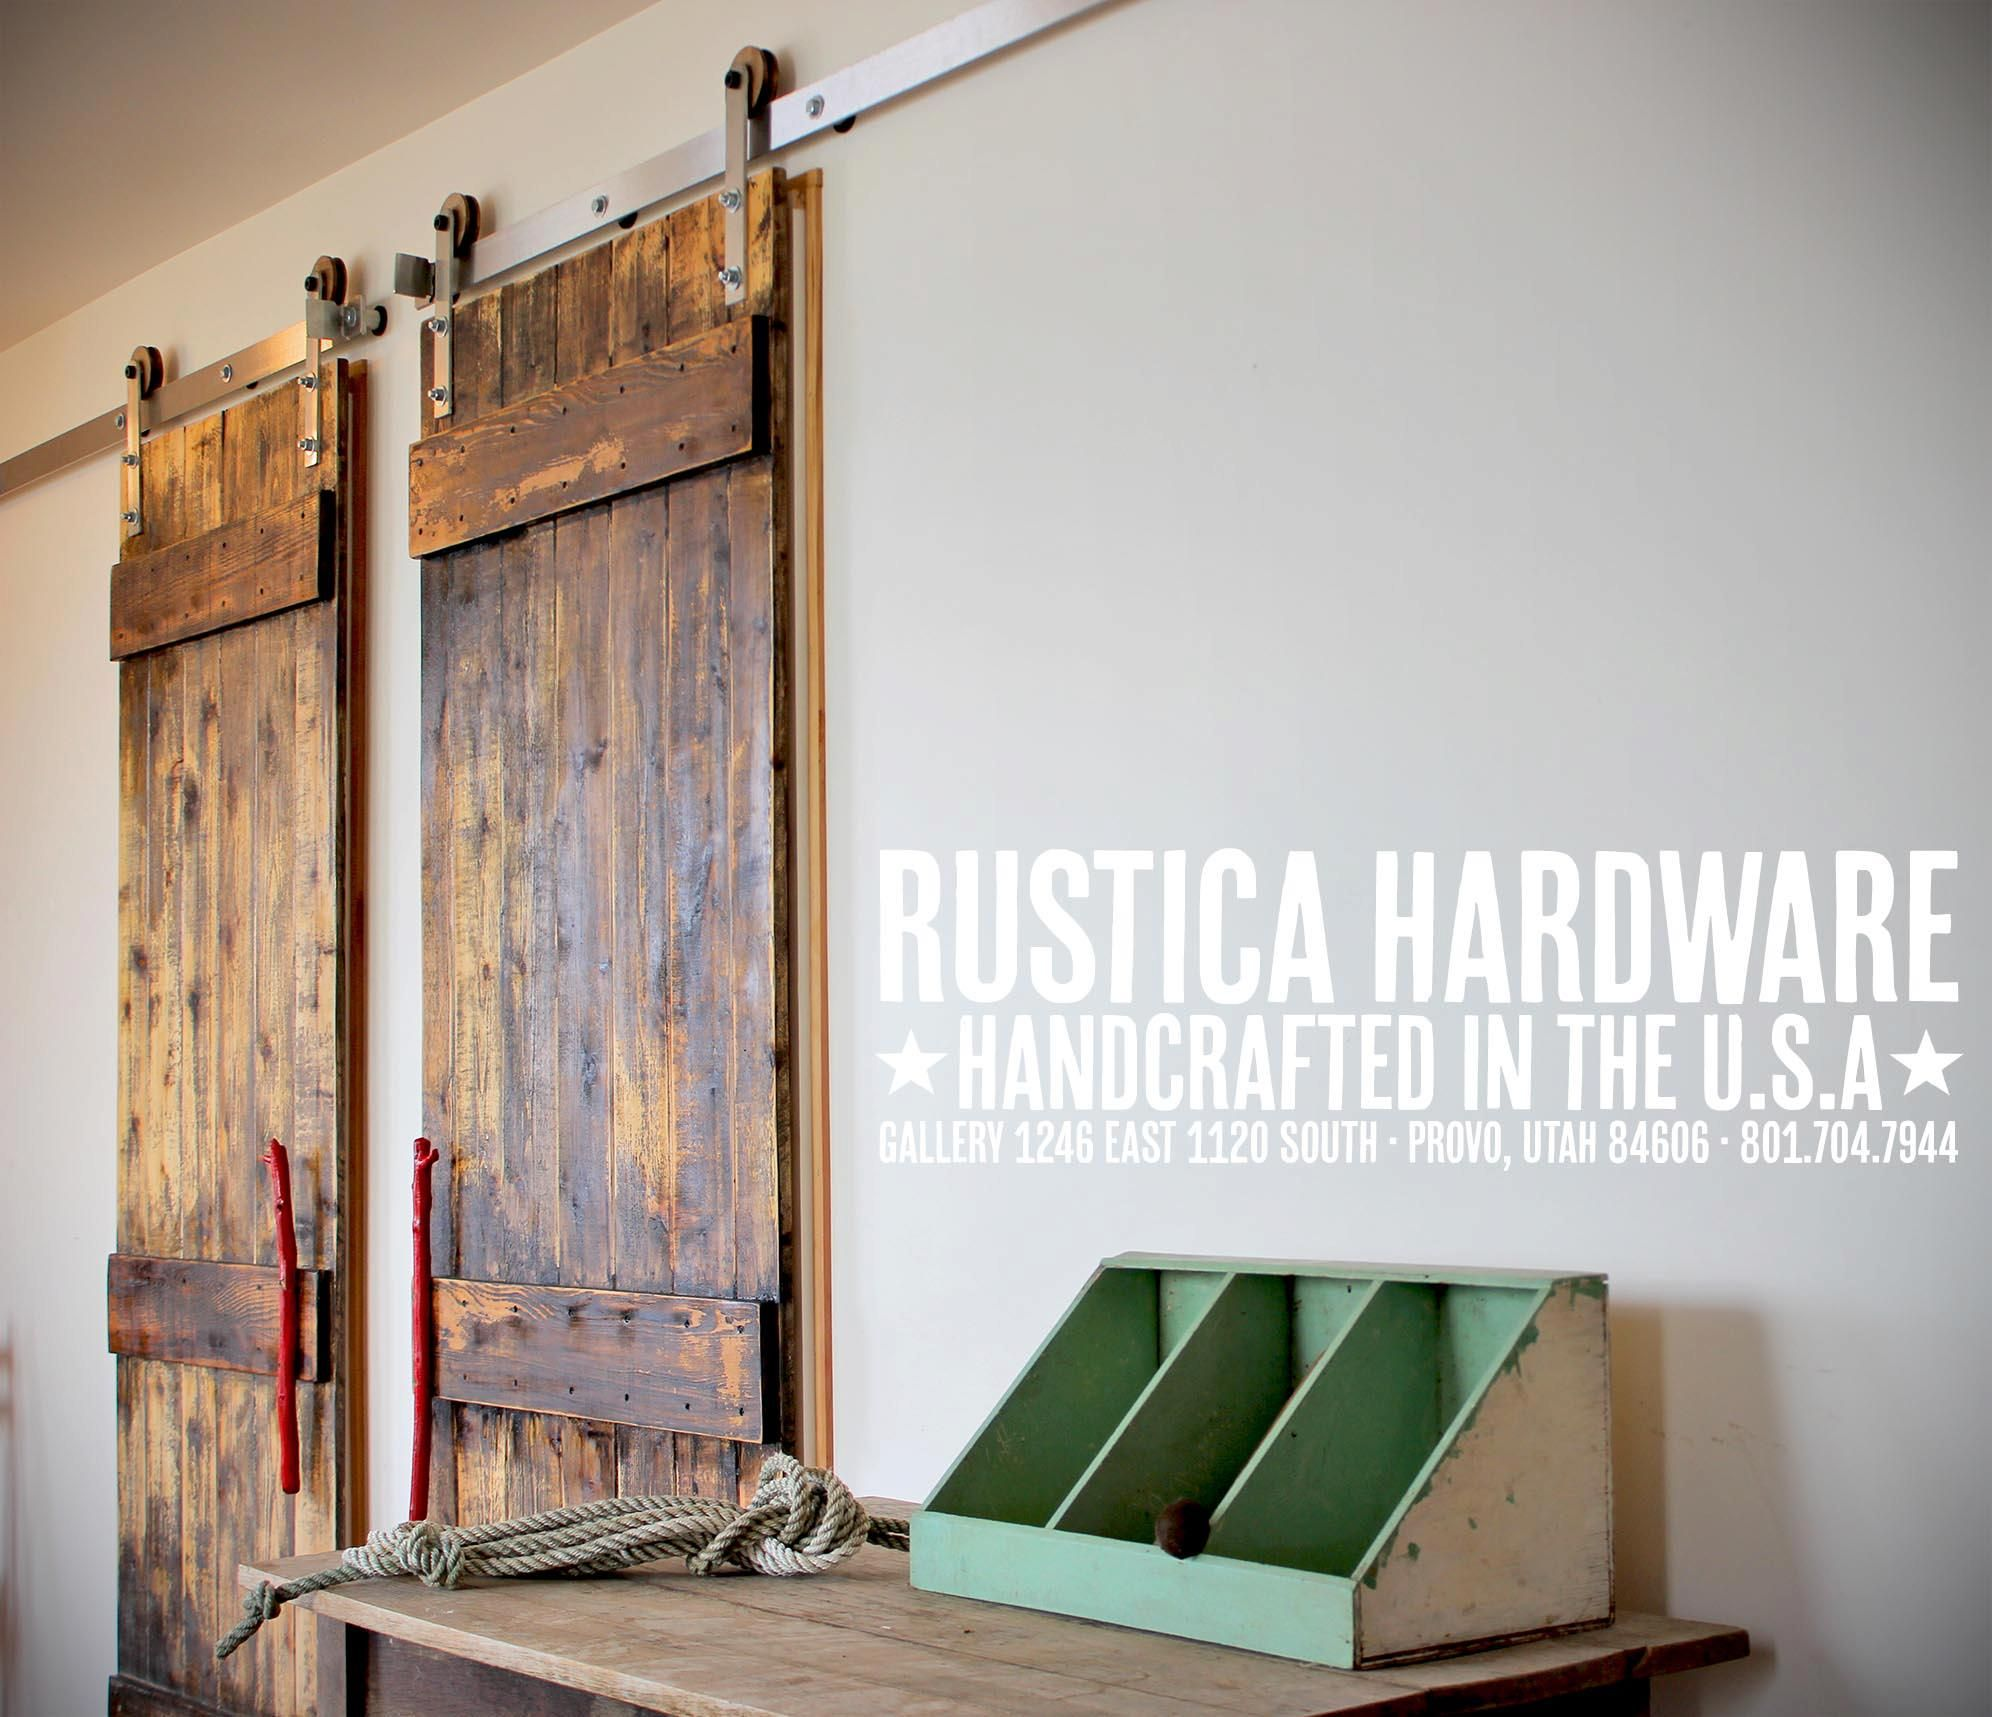 Ranch style barn doors for that rustic look. ://rusticahardware.com & Ranch style barn doors for that rustic look. http ... Pezcame.Com